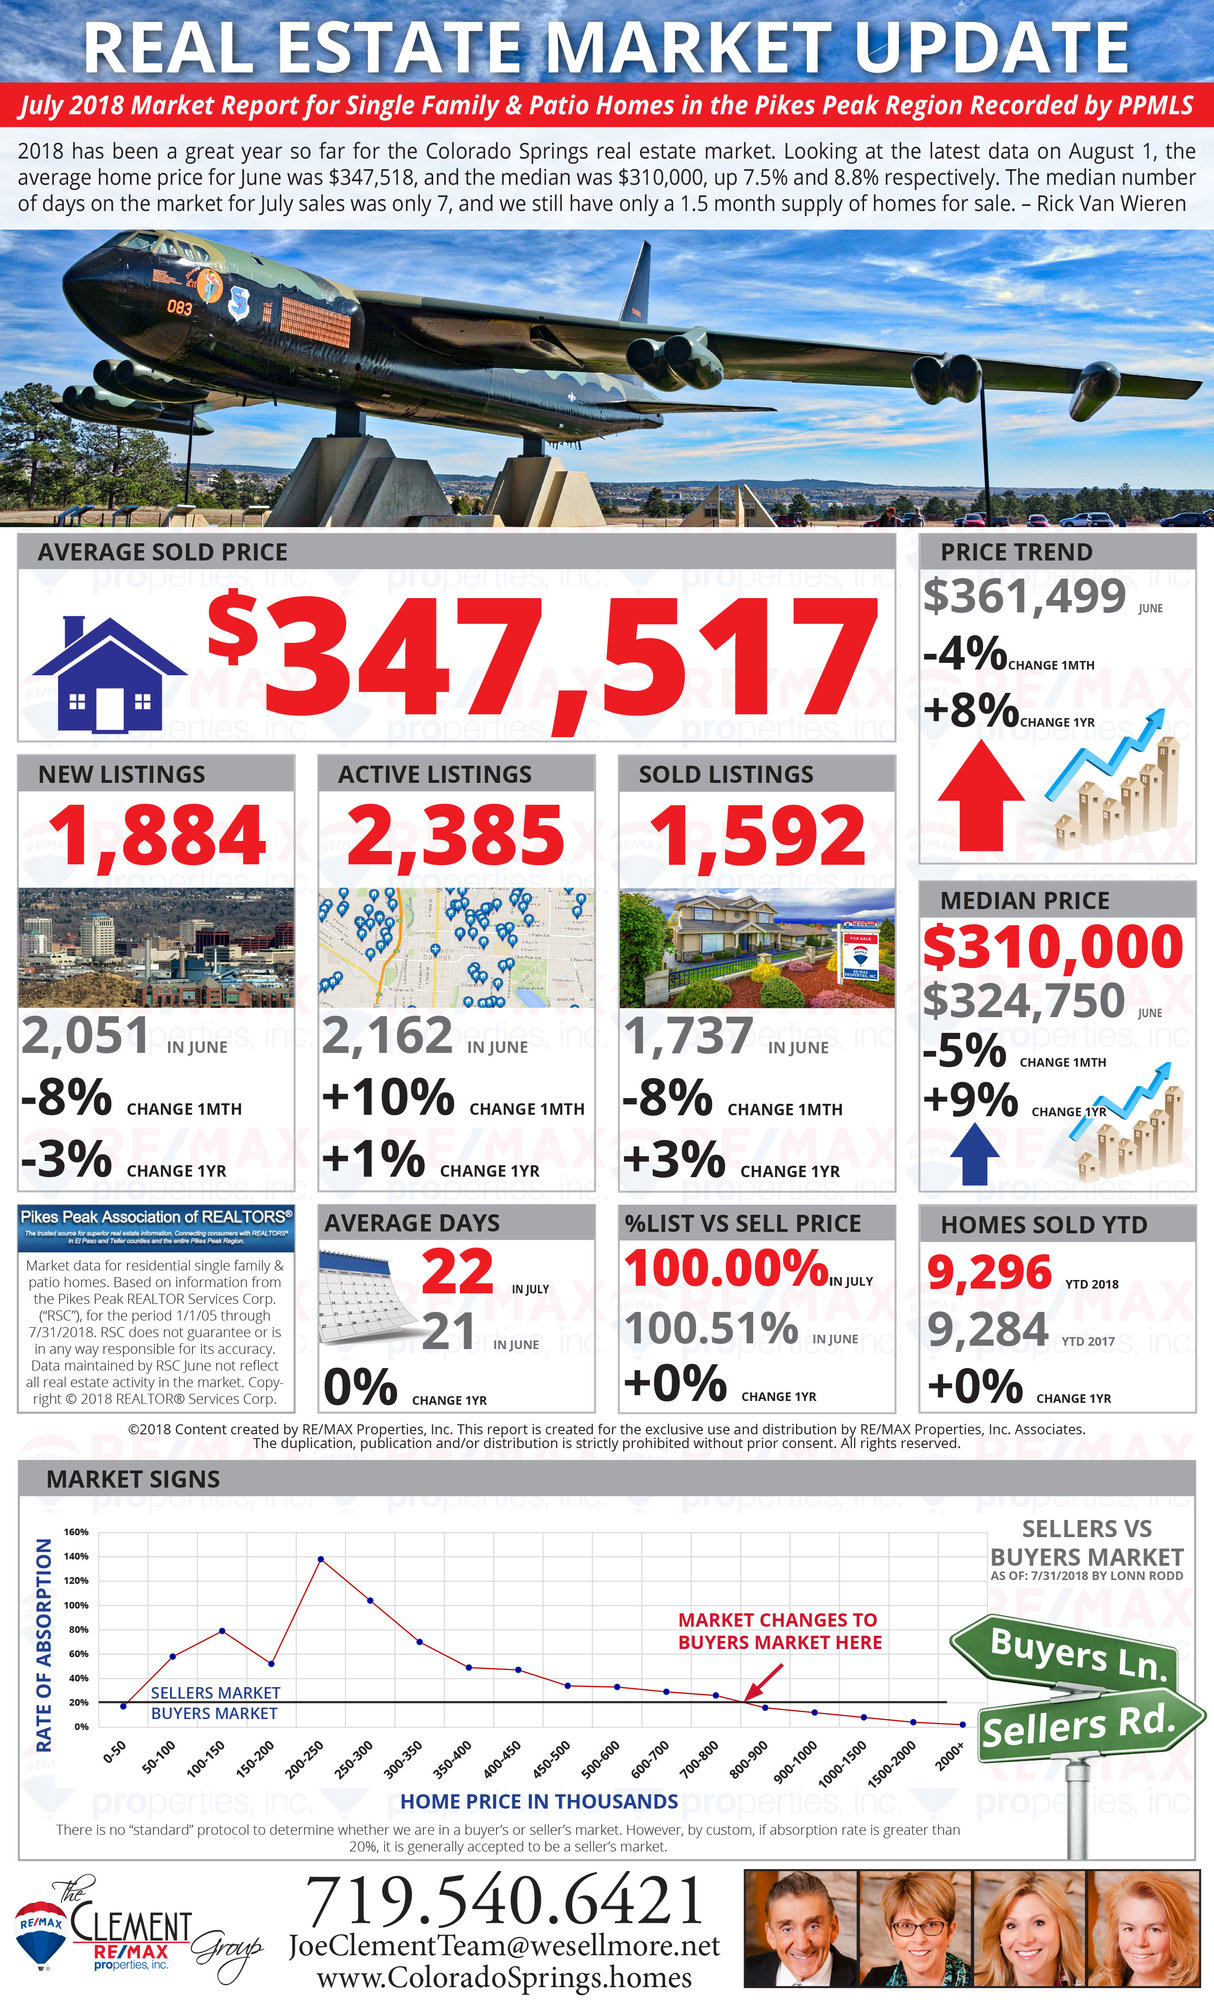 July 2018 Market Update - Colorado Springs Real Estate